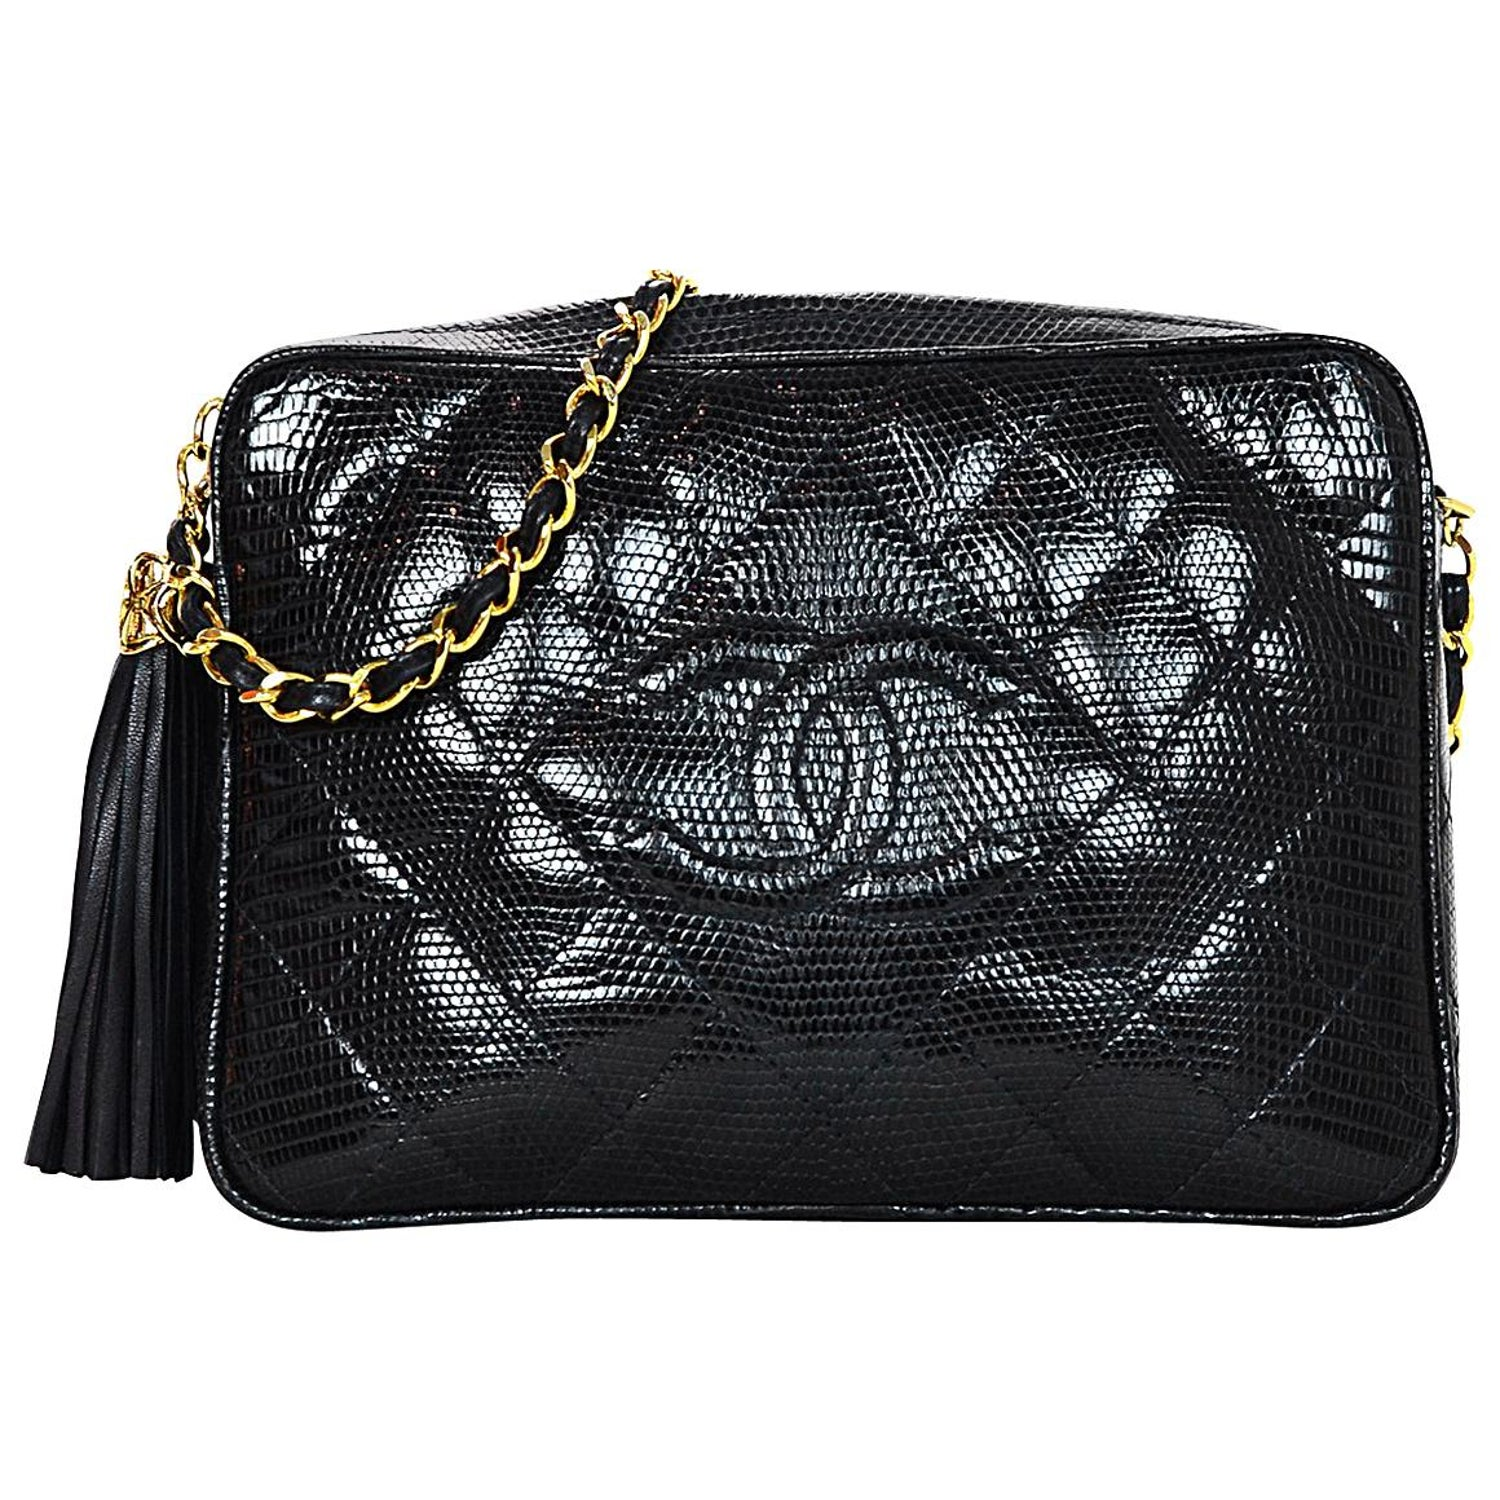 f6bc43892278 Chanel Vintage '89-'91 Navy Lizard Quilted CC Camera Crossbody Bag w. Tassel  For Sale at 1stdibs